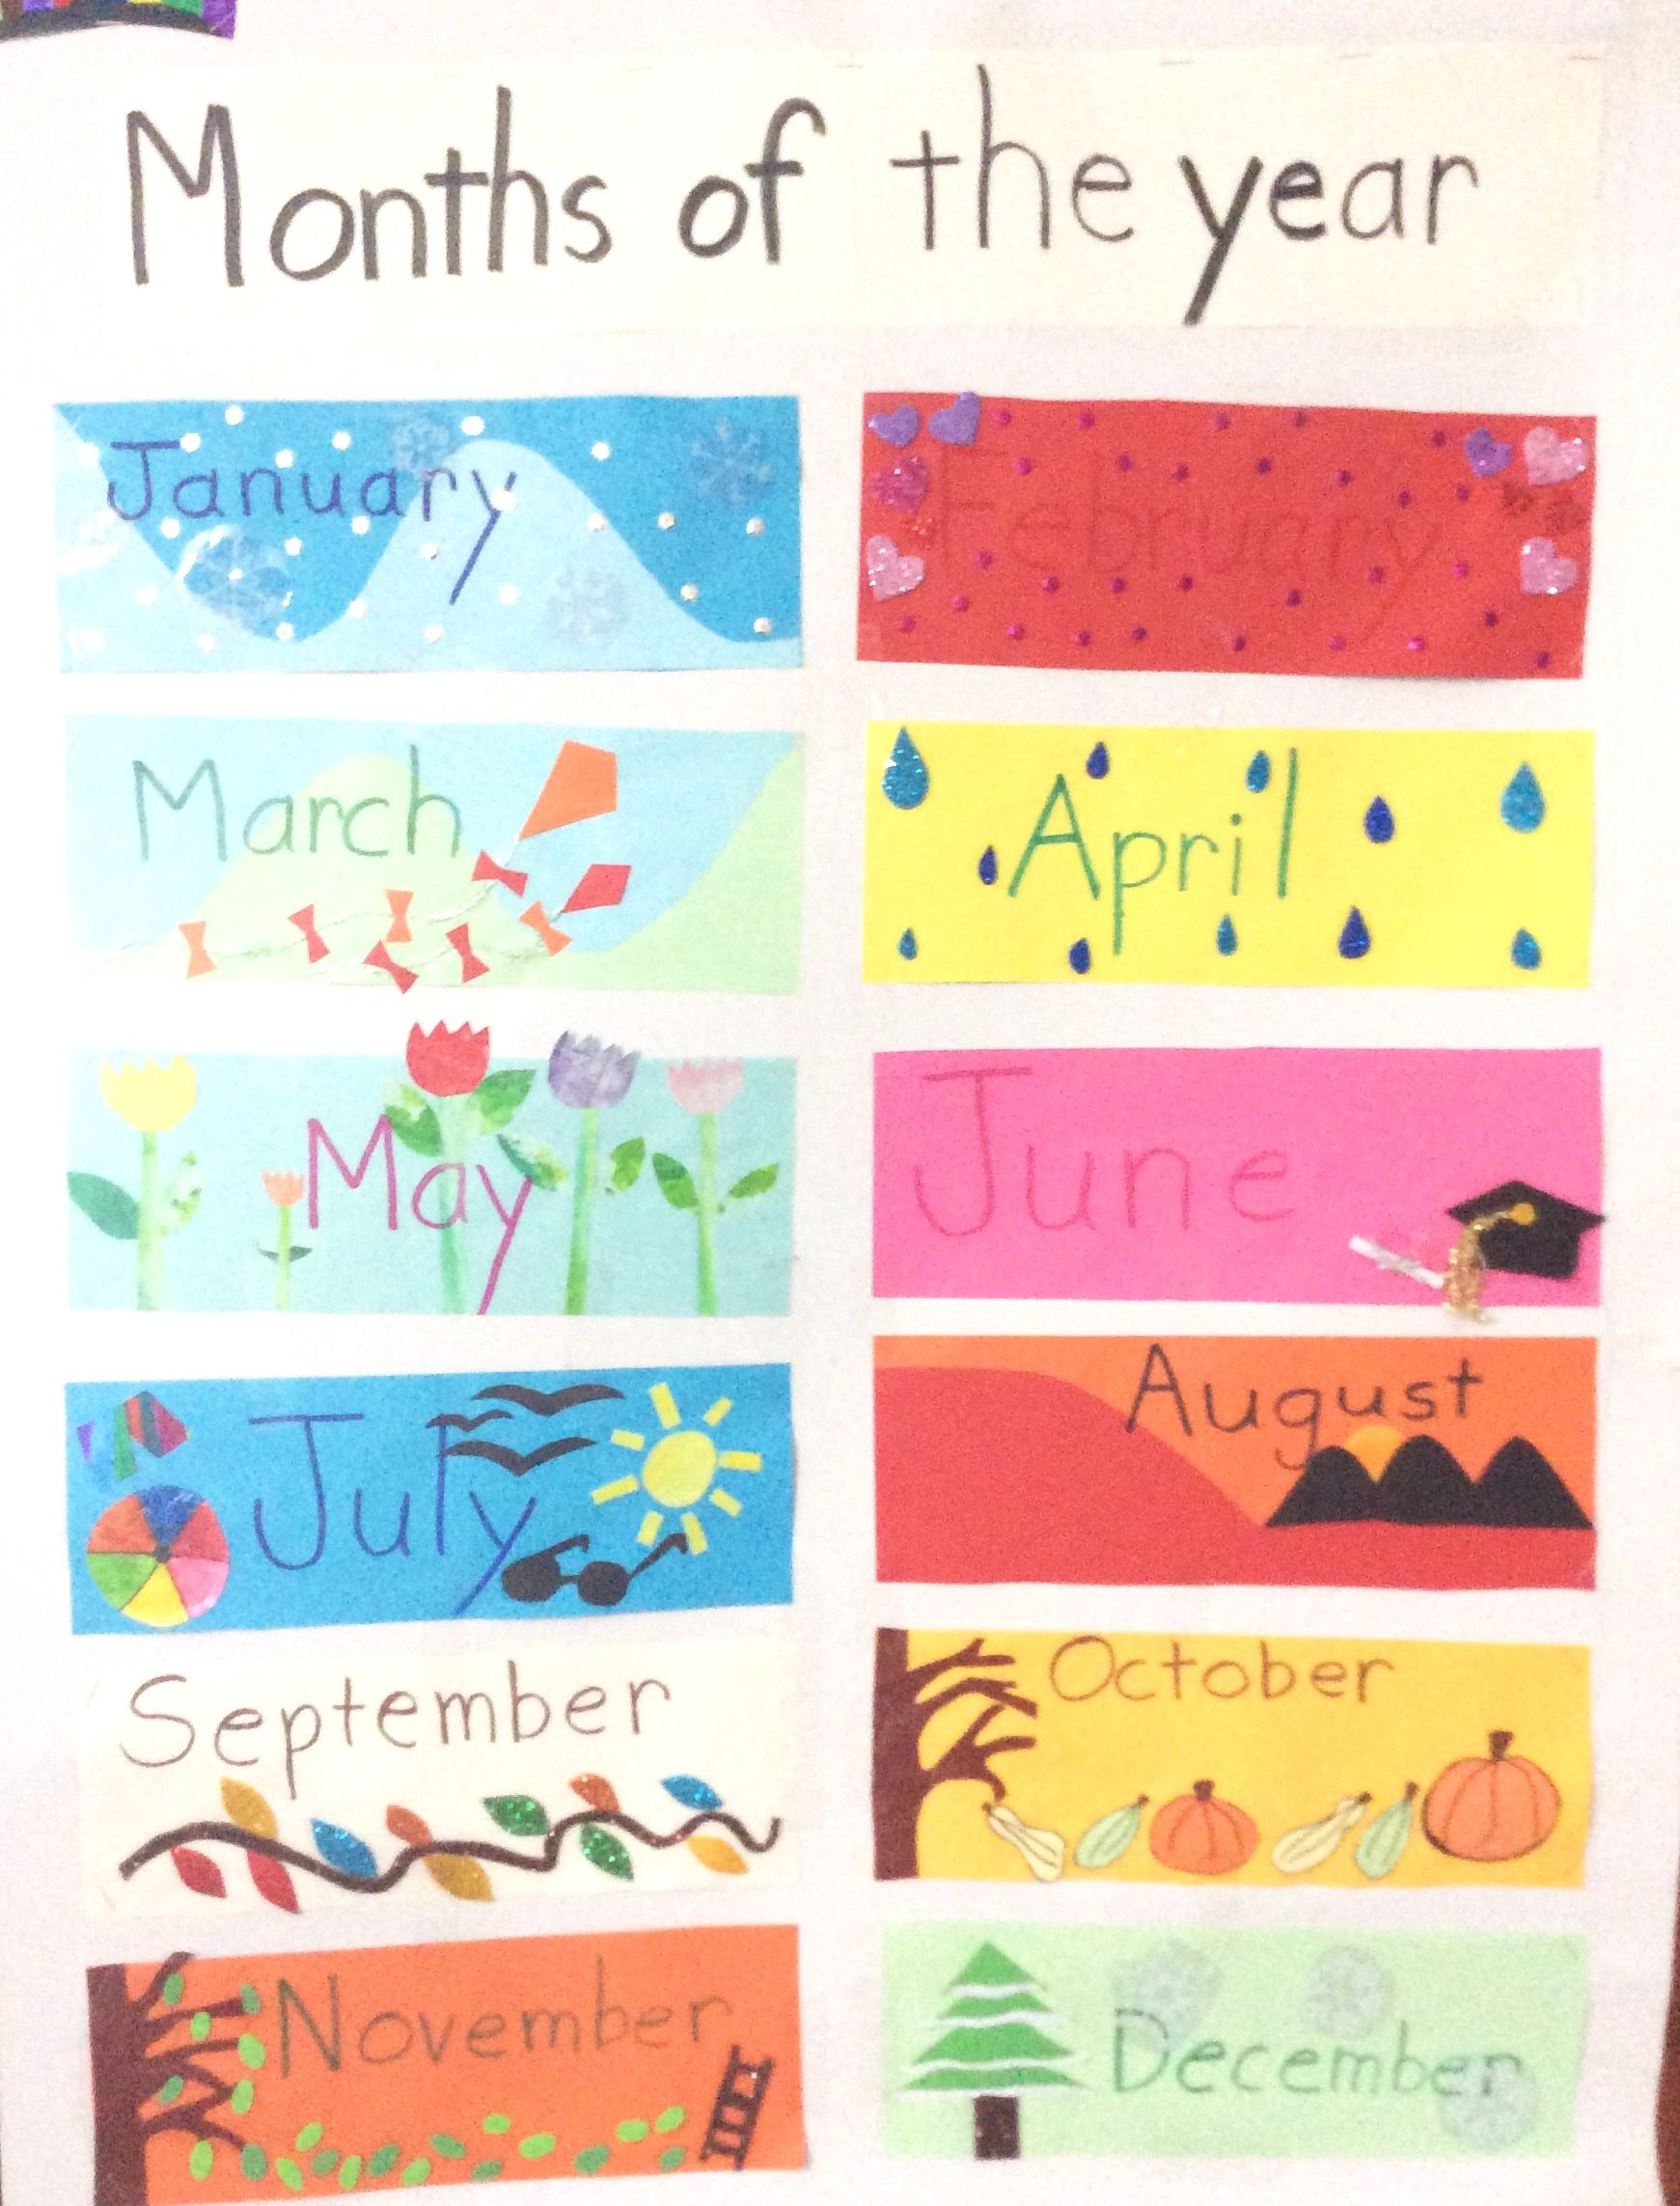 Months Of The Year Poster For Kids لوحة عن اشهر السنة للاطفال Months In A Year Projects To Try Kids Rugs